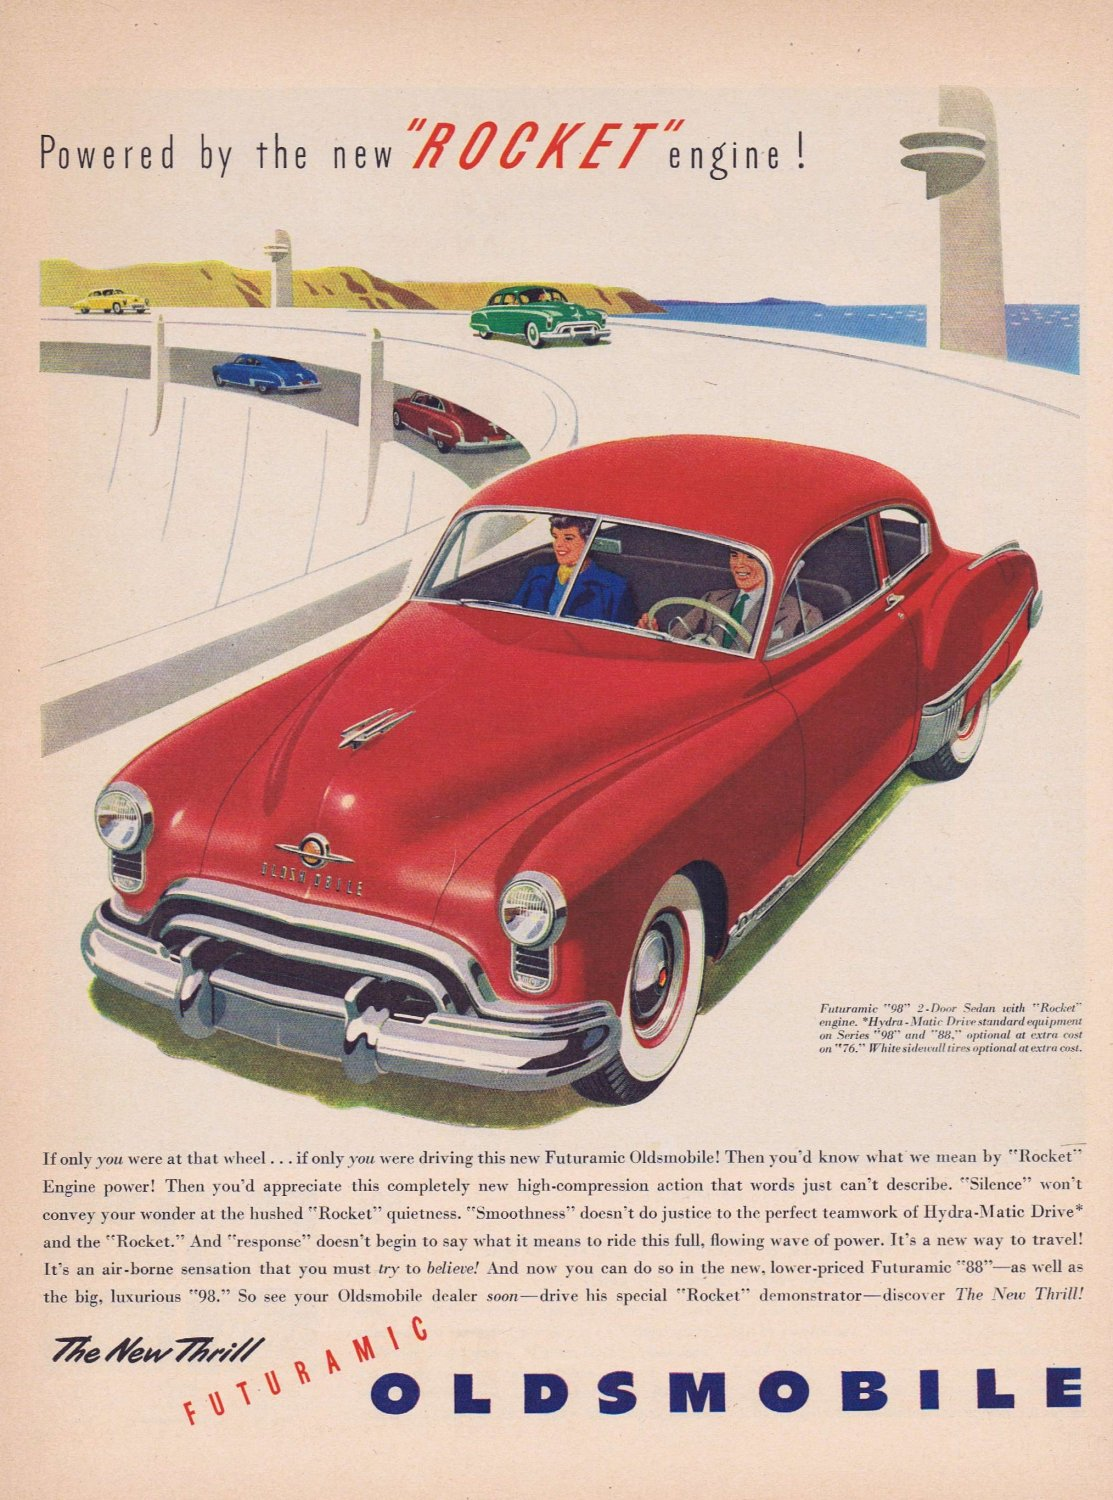 1949 Futuramic Oldsmobile Original Vintage Car Ad with Rocket Engine